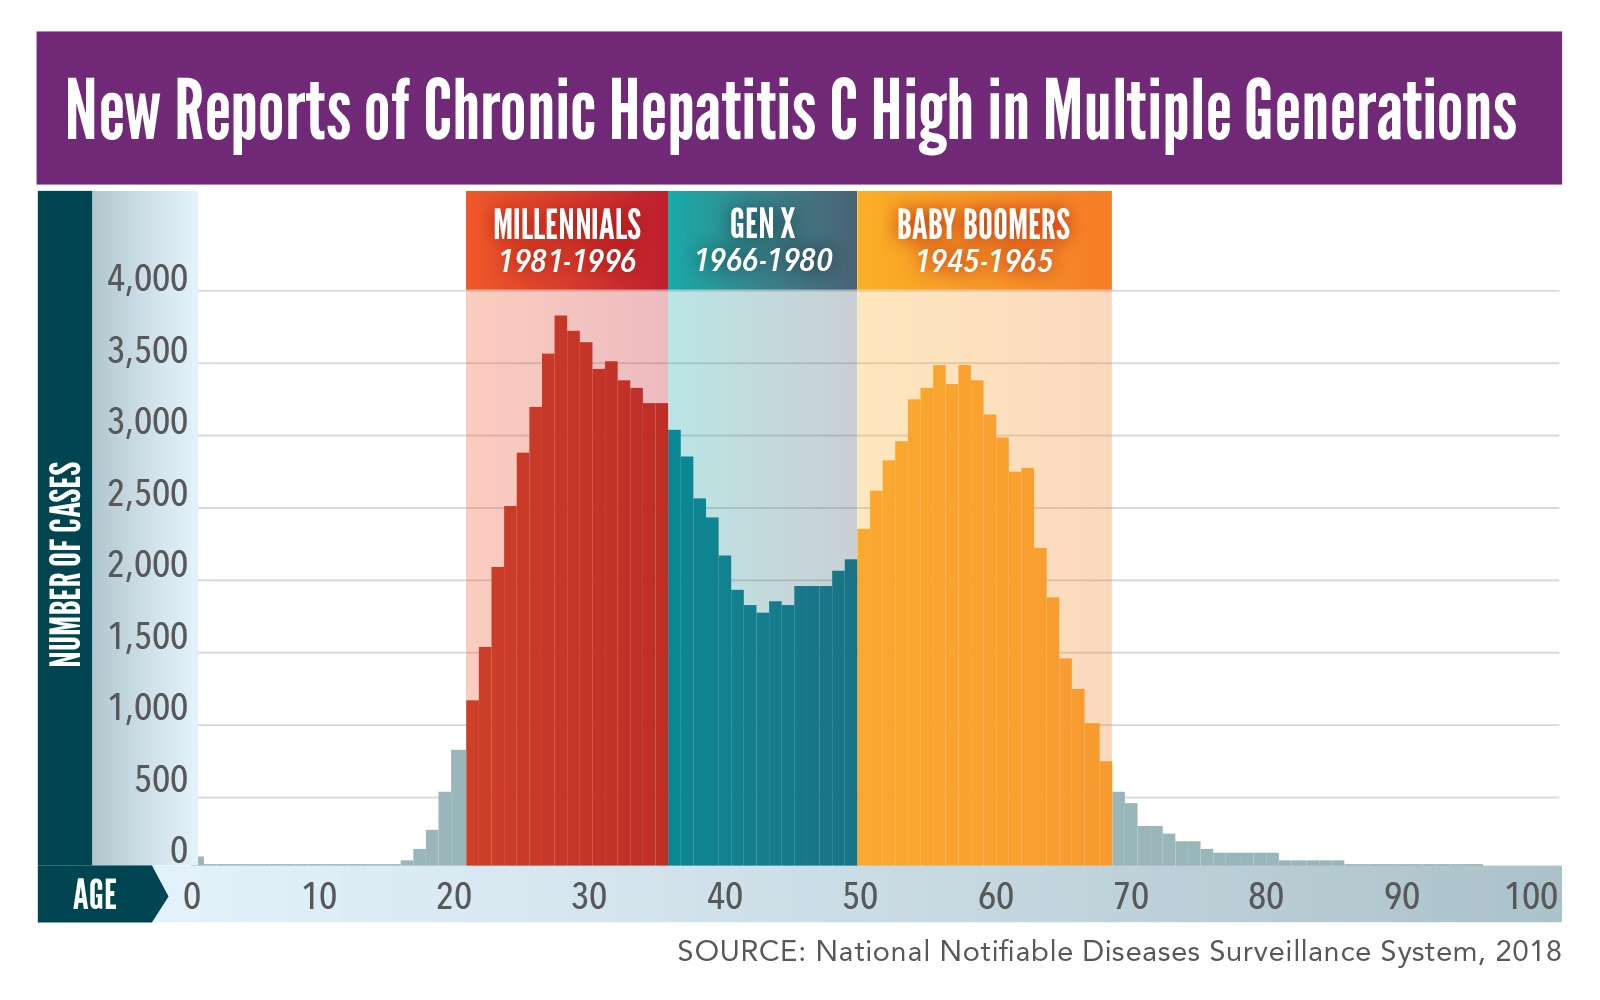 New Reports of Chronic Hepatitis C High in Multiple Generations